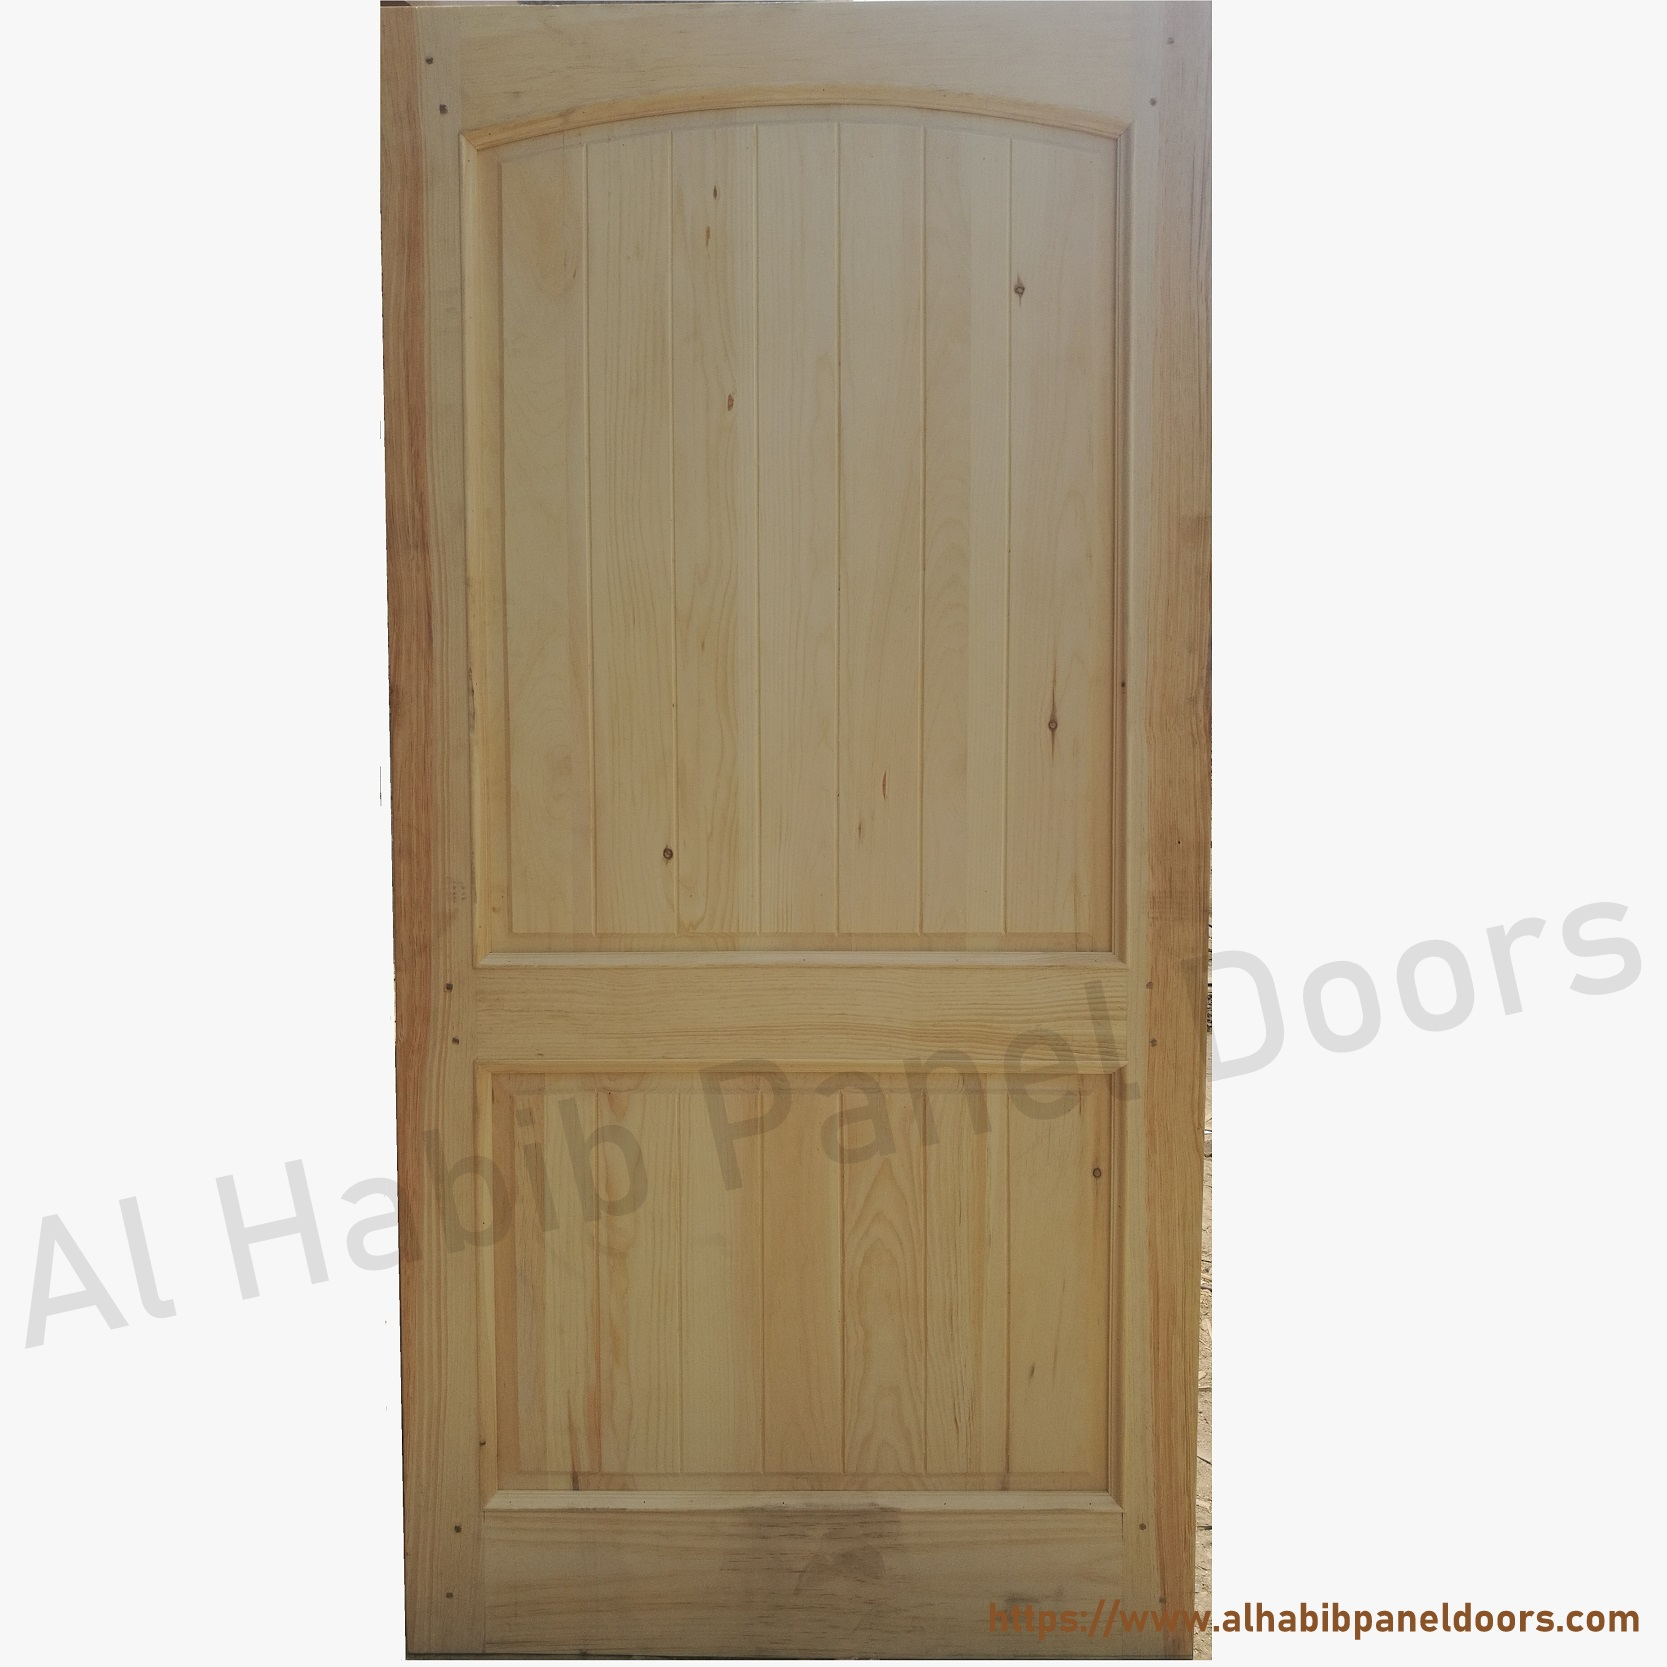 Solid wood door solid wood doors al habib panel doors for Plain main door designs